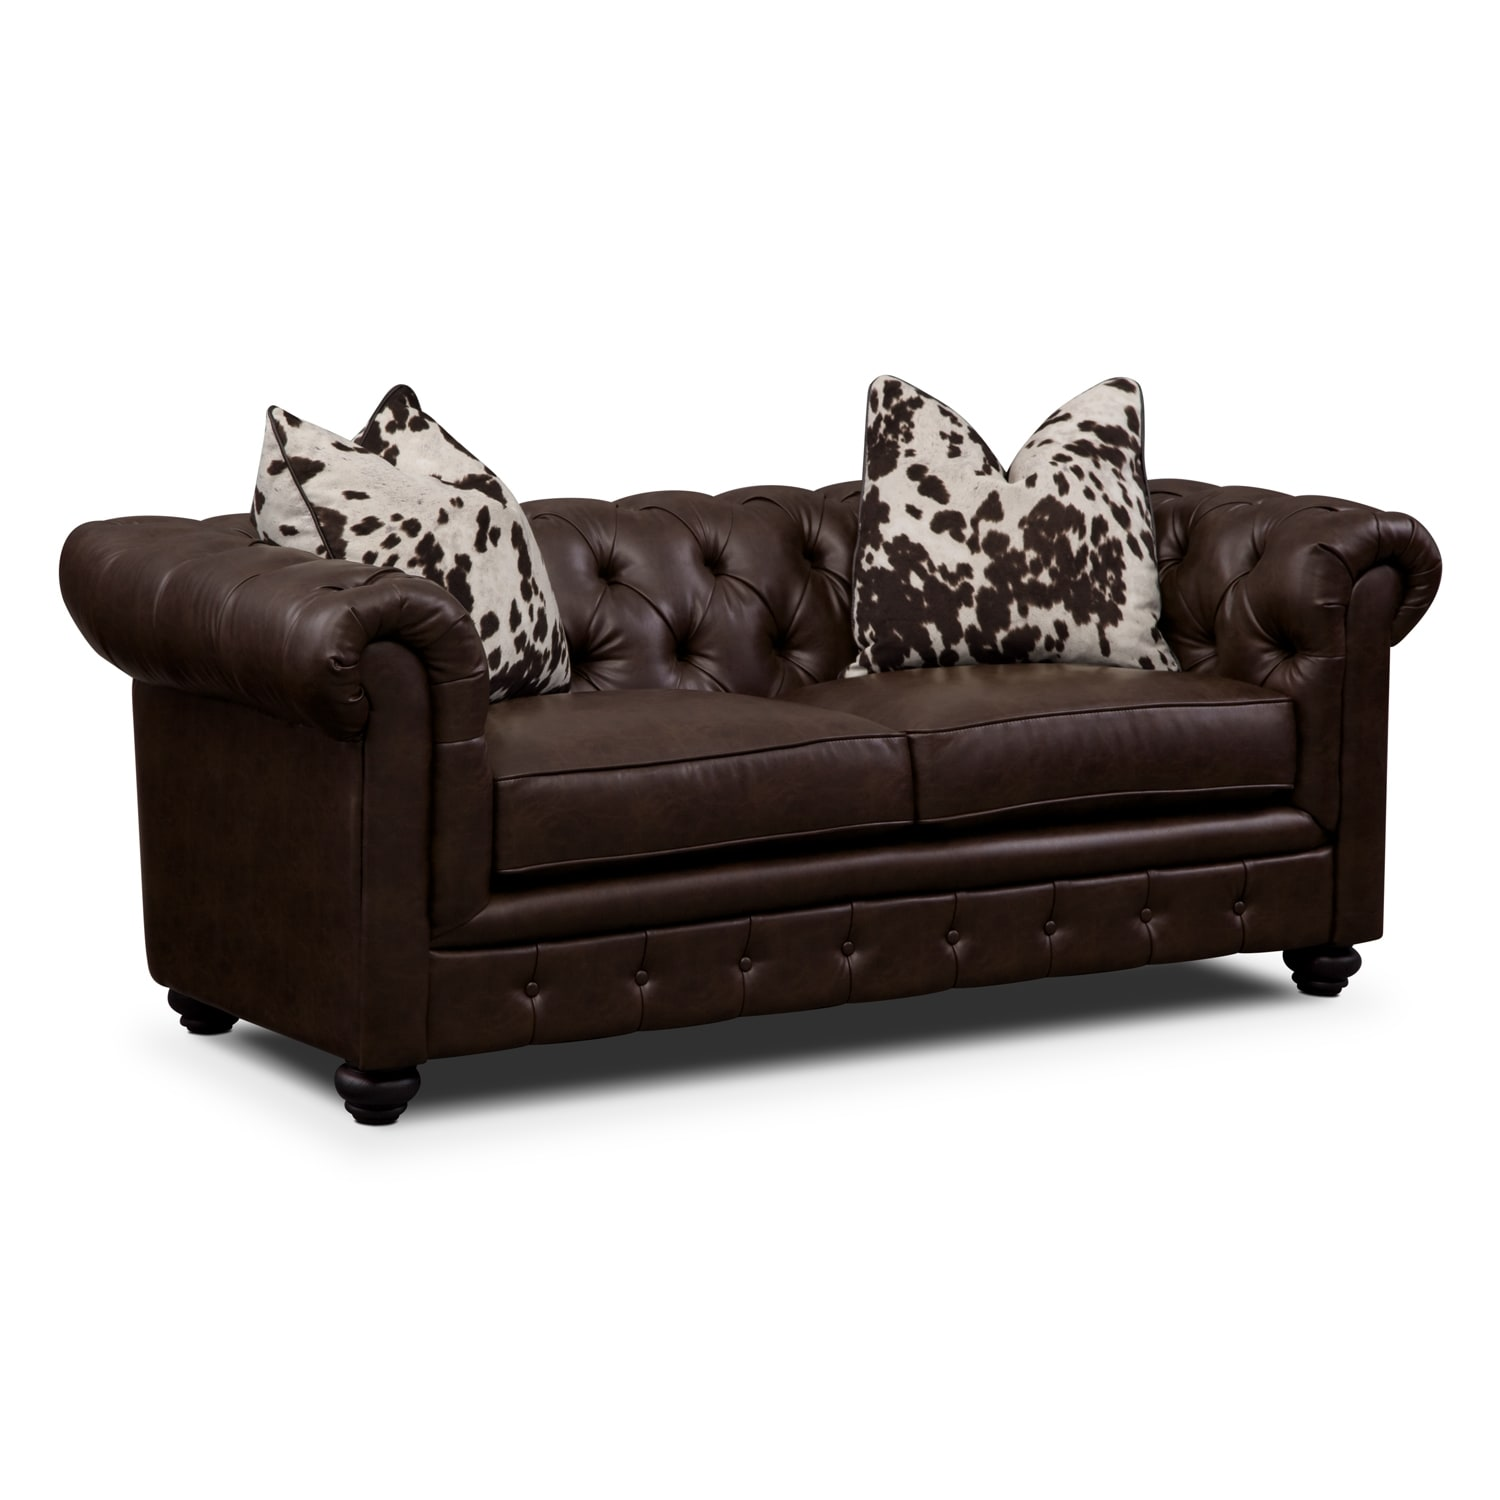 American Apartment: Madeline Apartment Sofa - Chocolate